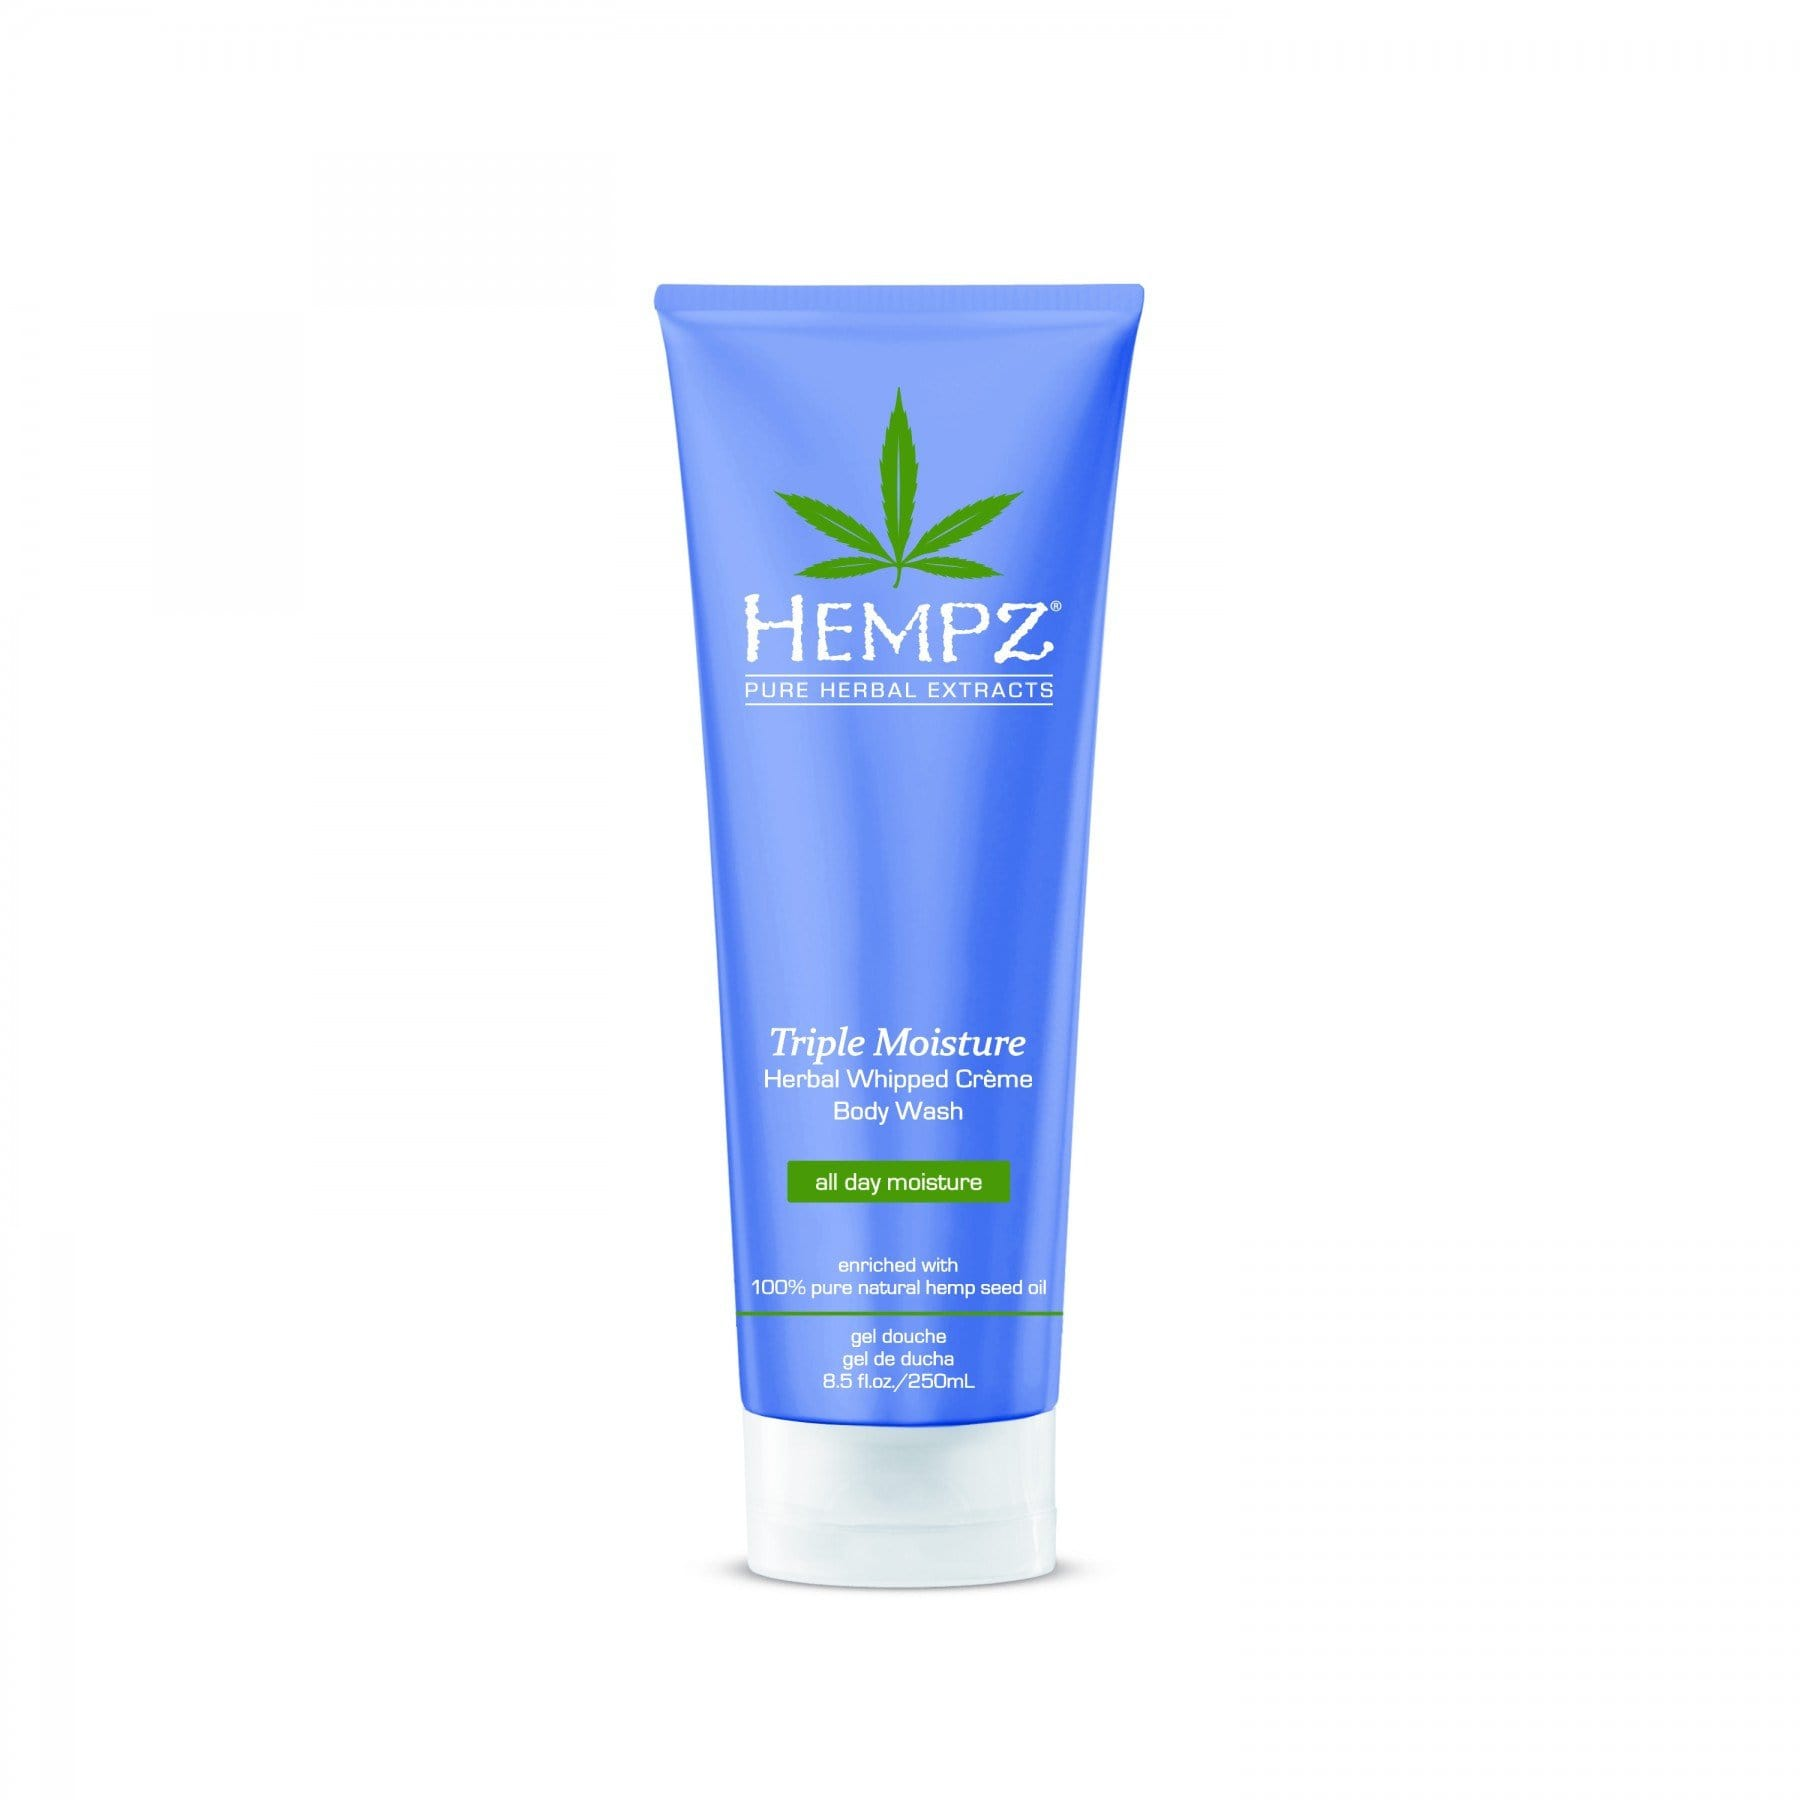 HEMPZ Triple Moisture Herbal Whipped Crème Body Wash